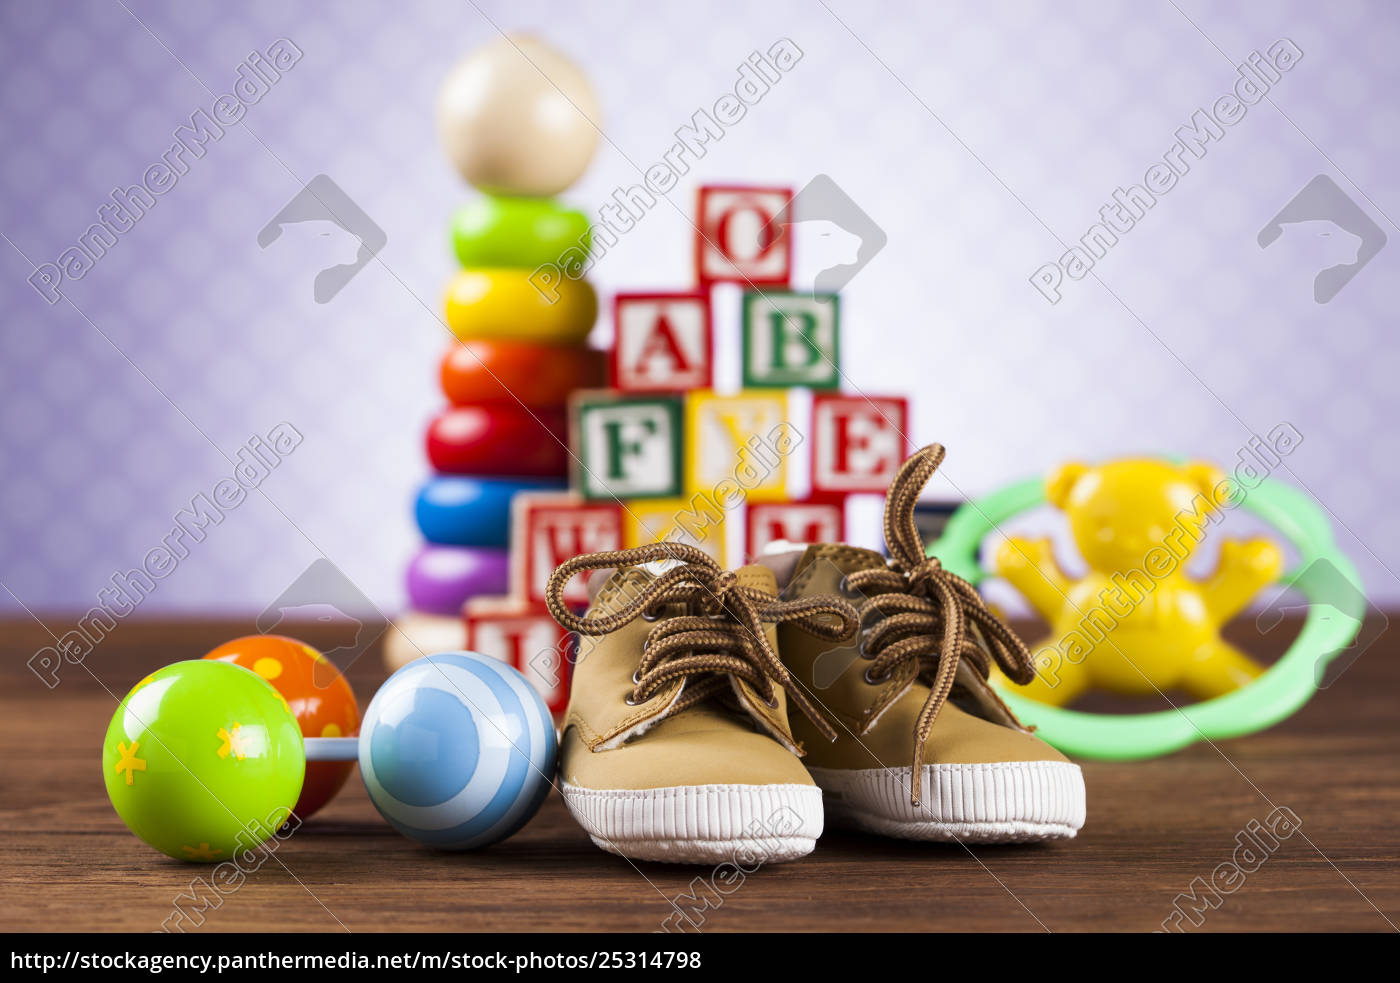 stuffed, baby, toys, on, wooden, background - 25314798